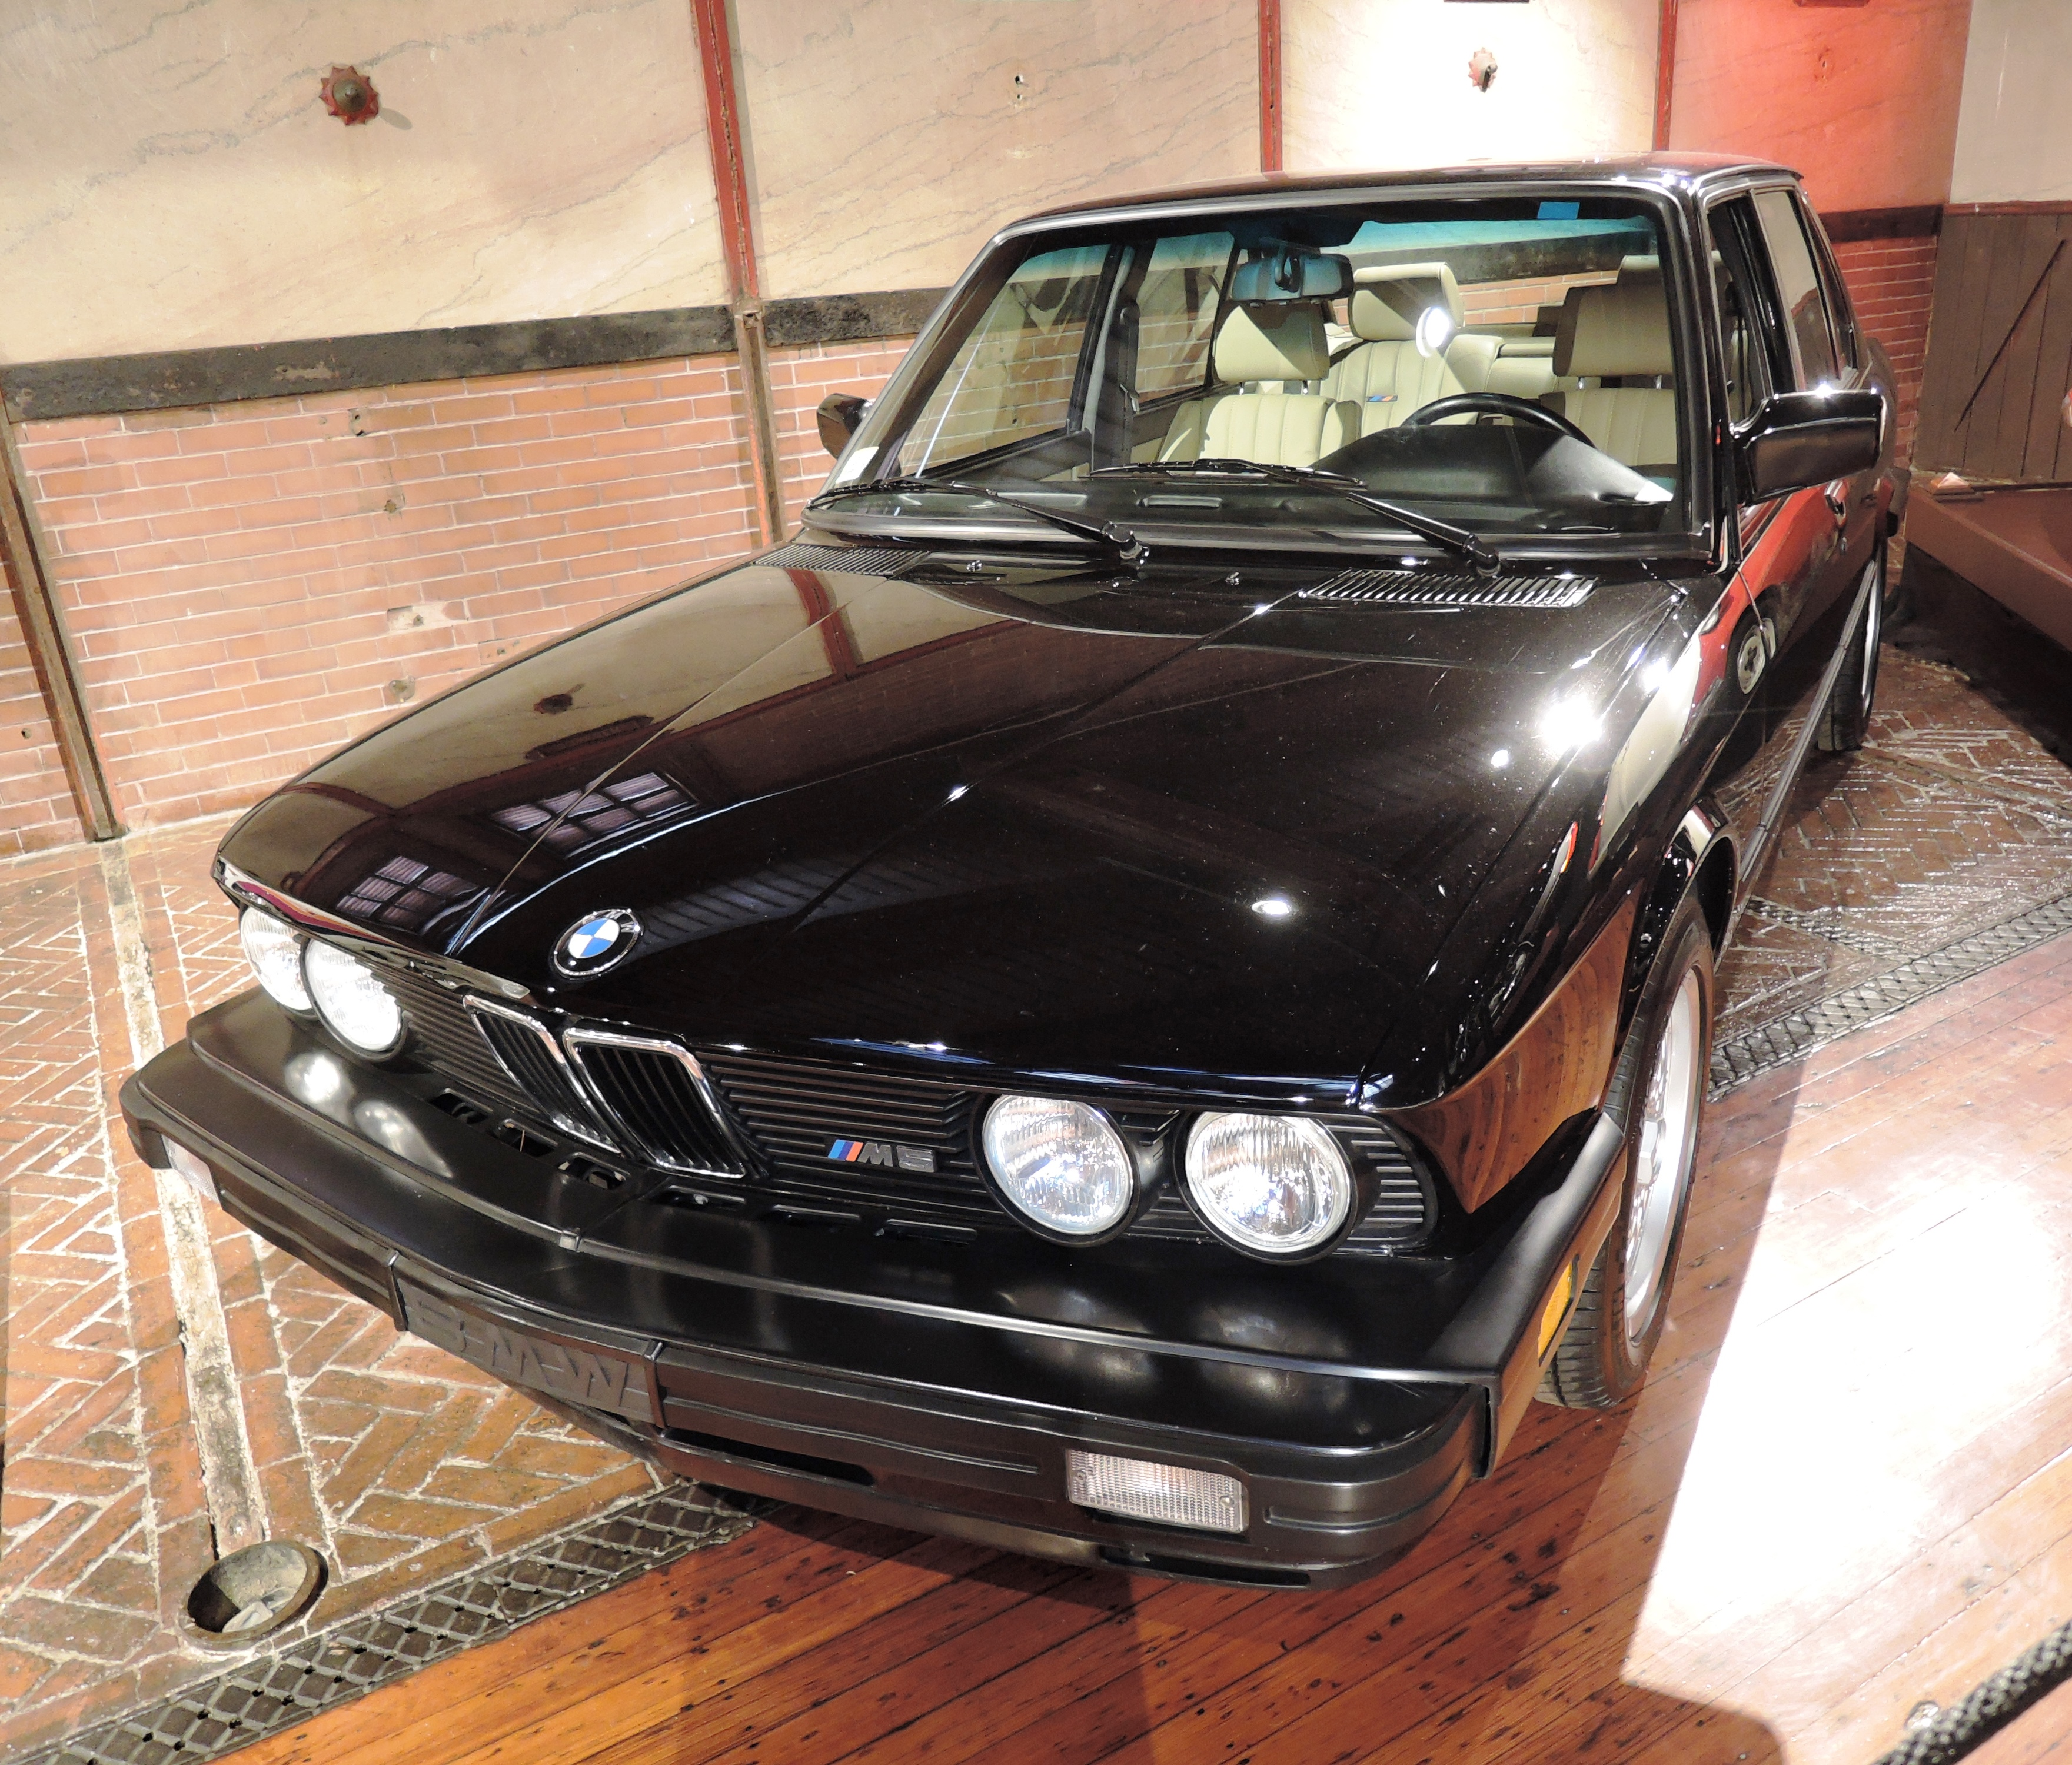 black 1988 BMW E28 M5 - cars and coffee at larz